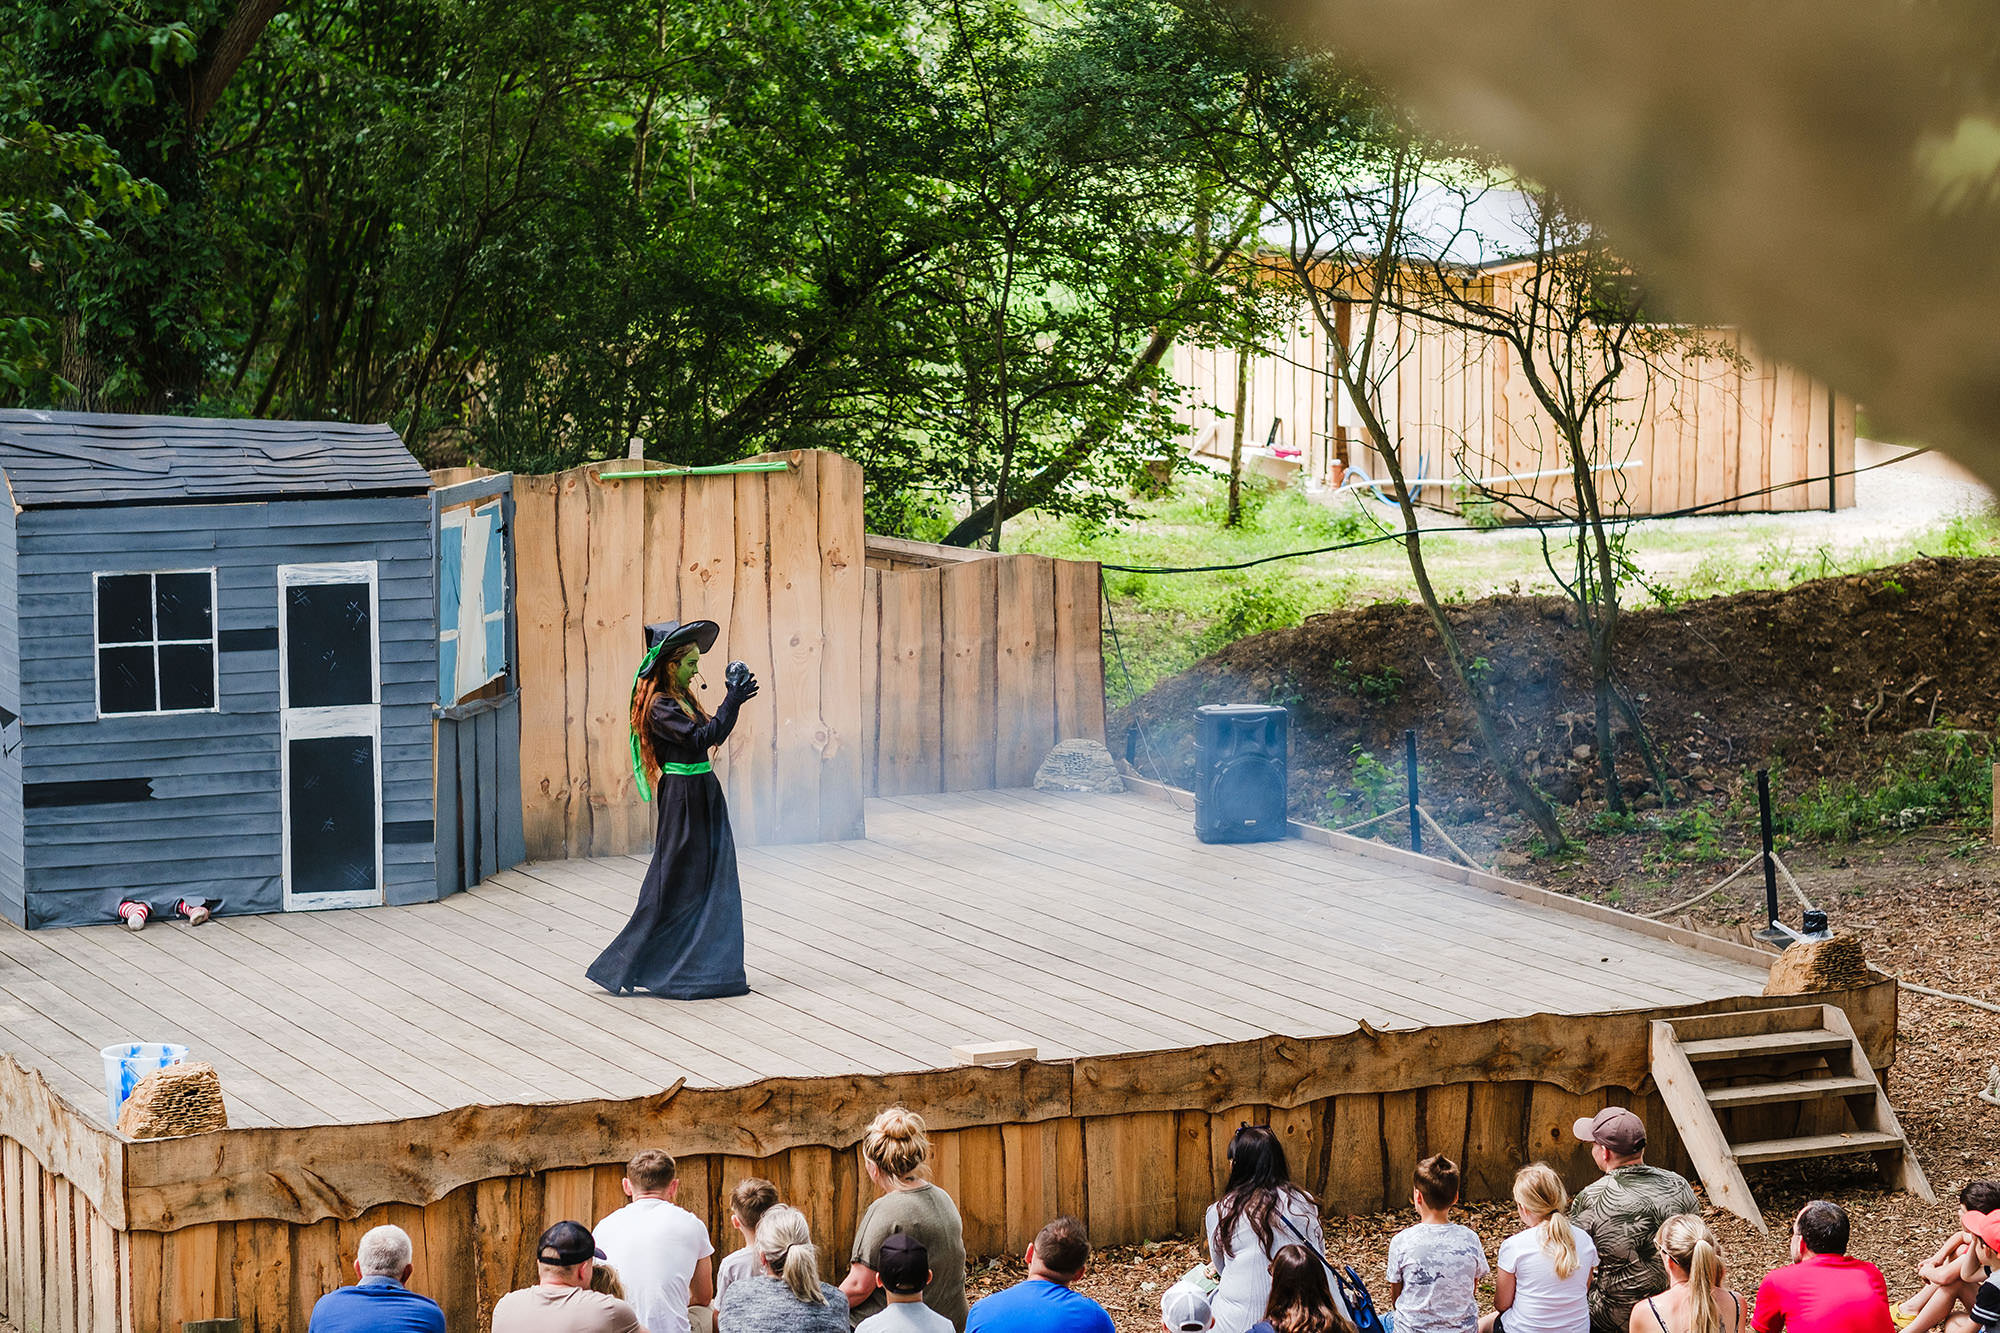 Groombridge place open air theatre